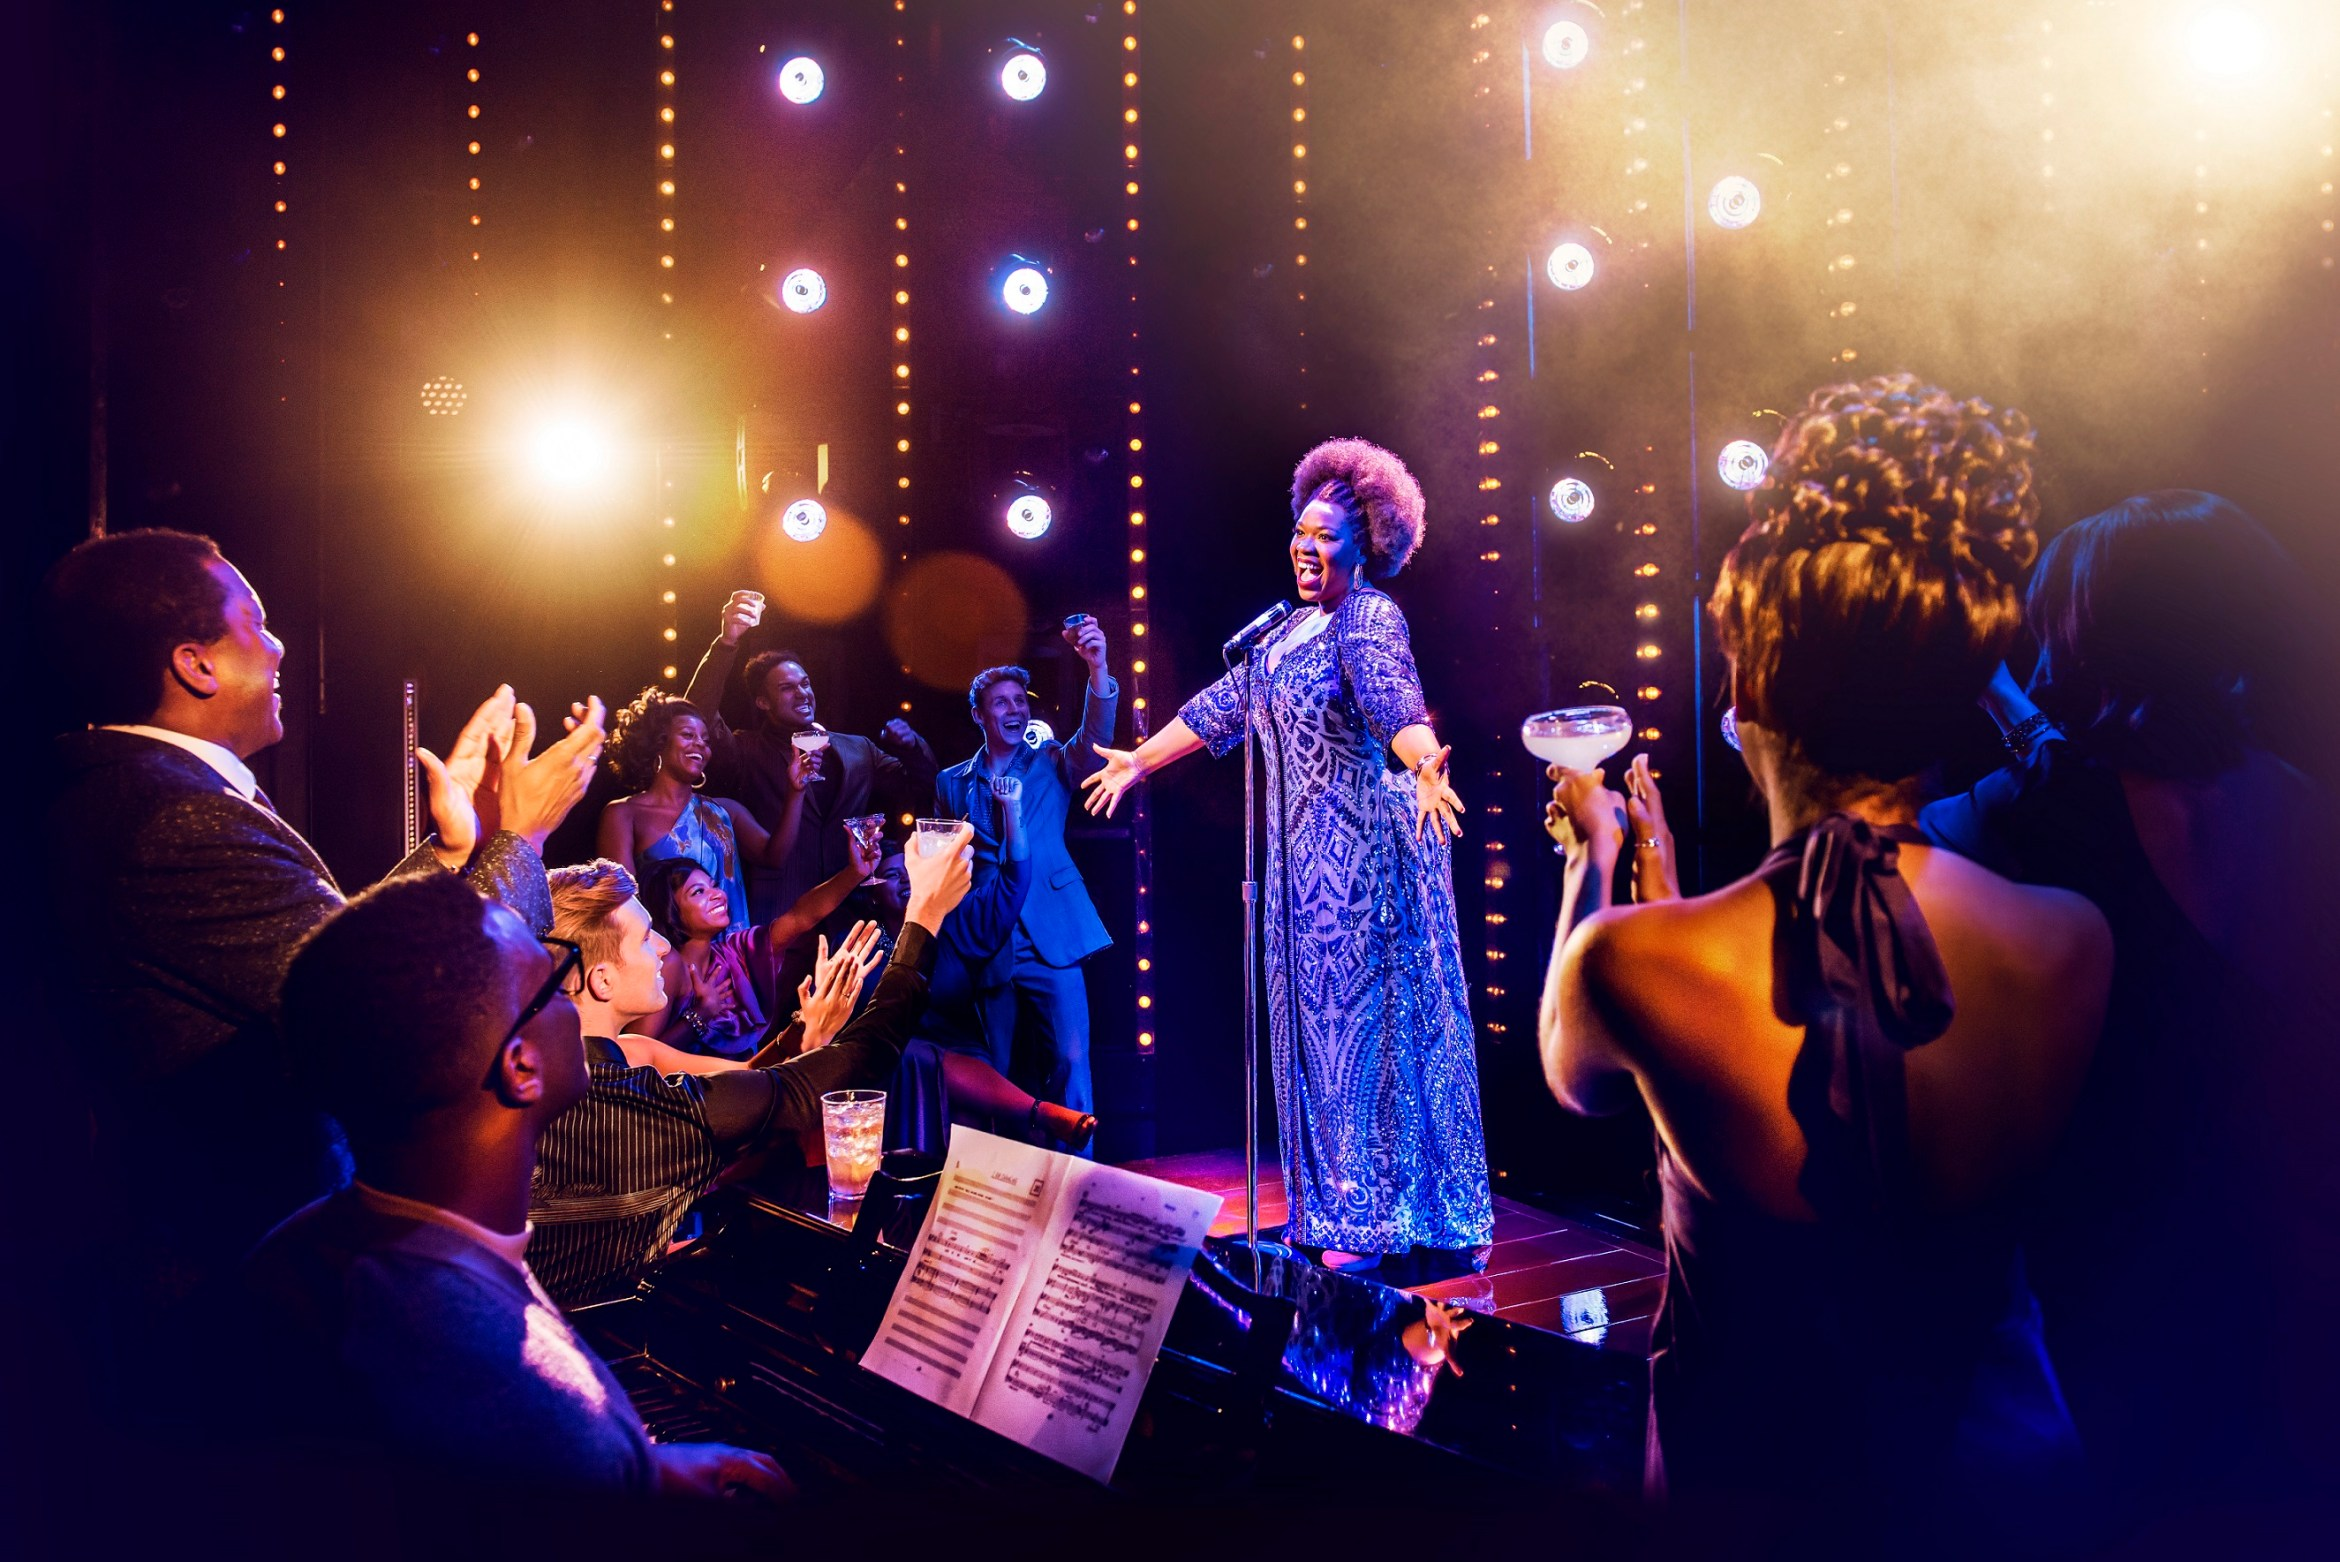 Moya-Angela-in-Dreamgirls-at-the-Savoy-Theatre.-Credit-Dewynters.jpg